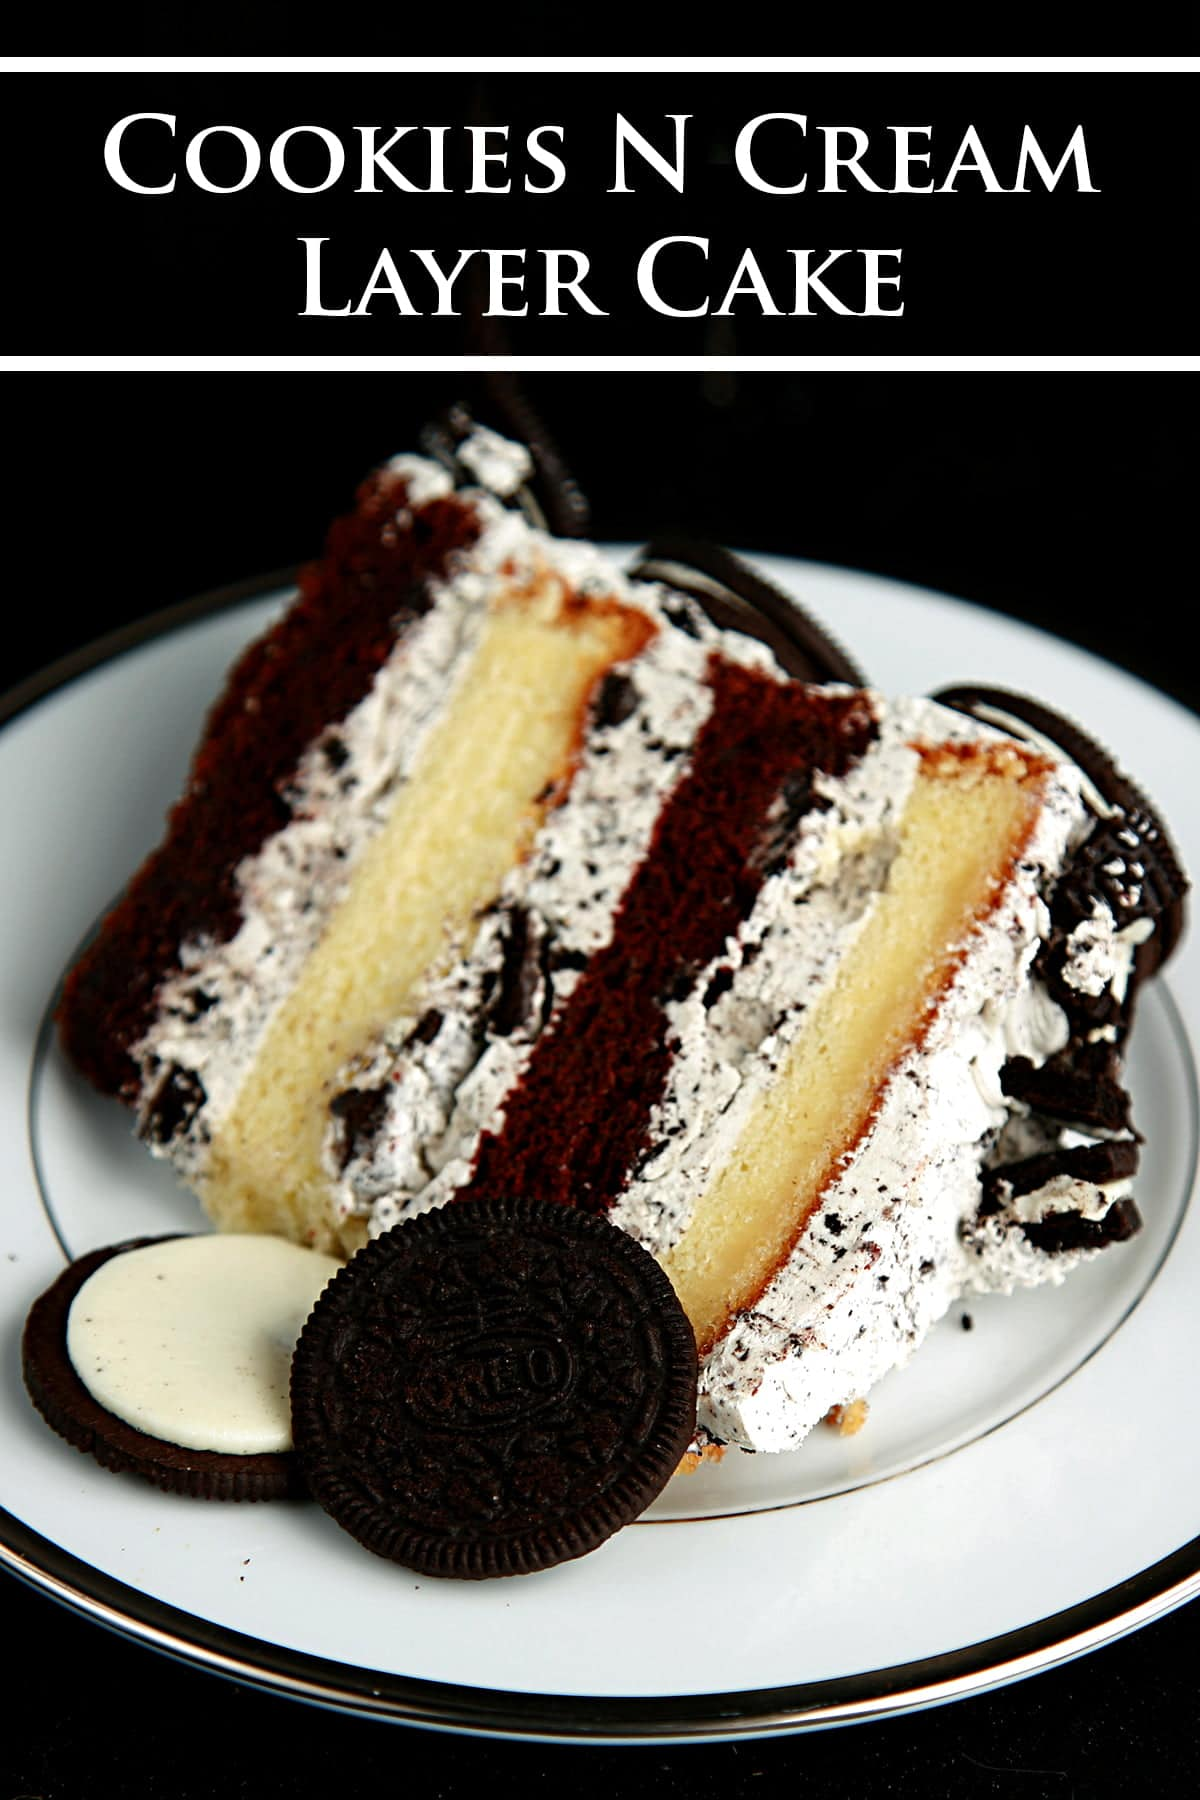 A slice of Cookies N'Cream Cake: A layered chocolate and vanilla torte, filled with vanilla Buttercream and Oreo cookies. The cake slice is on a white place, against a black background.